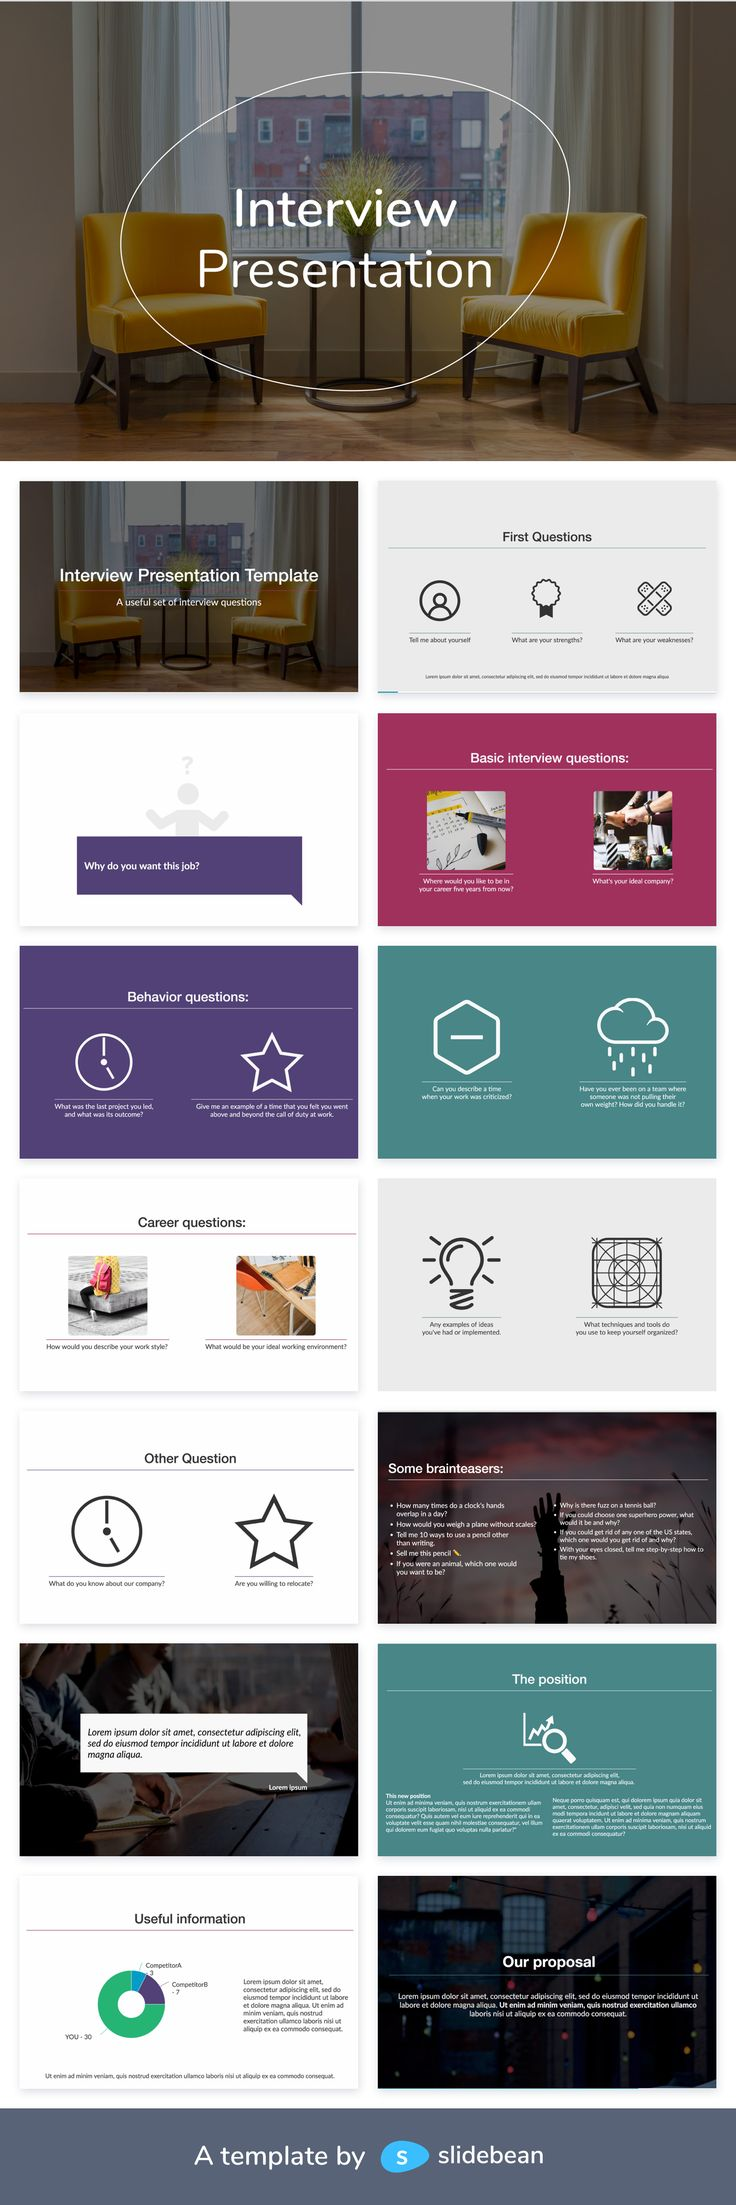 Interview Powerpoint Templates Powerpoint template free